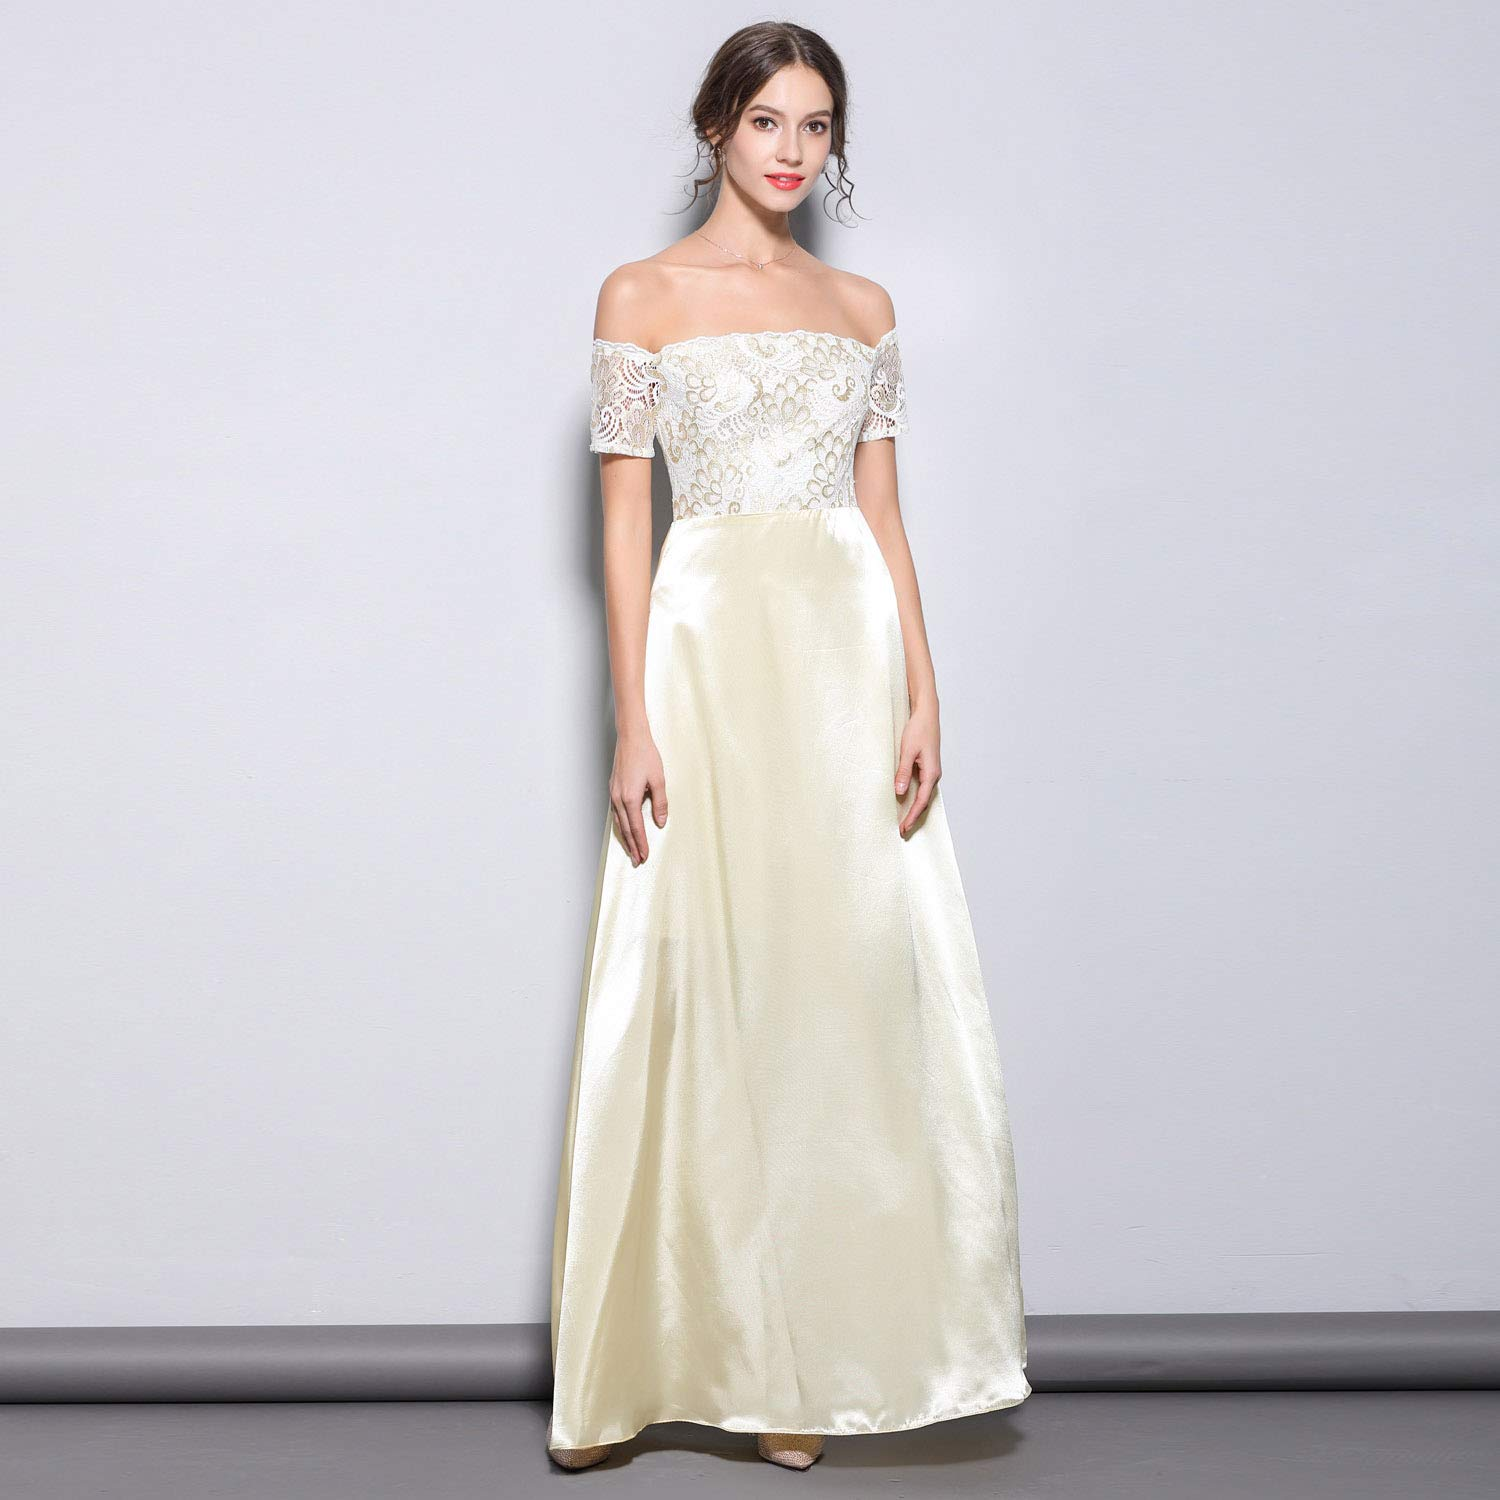 Women's Off Shoulder Satin Lace Evening Dress Elegant Pure color Long Dresses for Ladies Girls Wedding Party Prom Wear,Beige